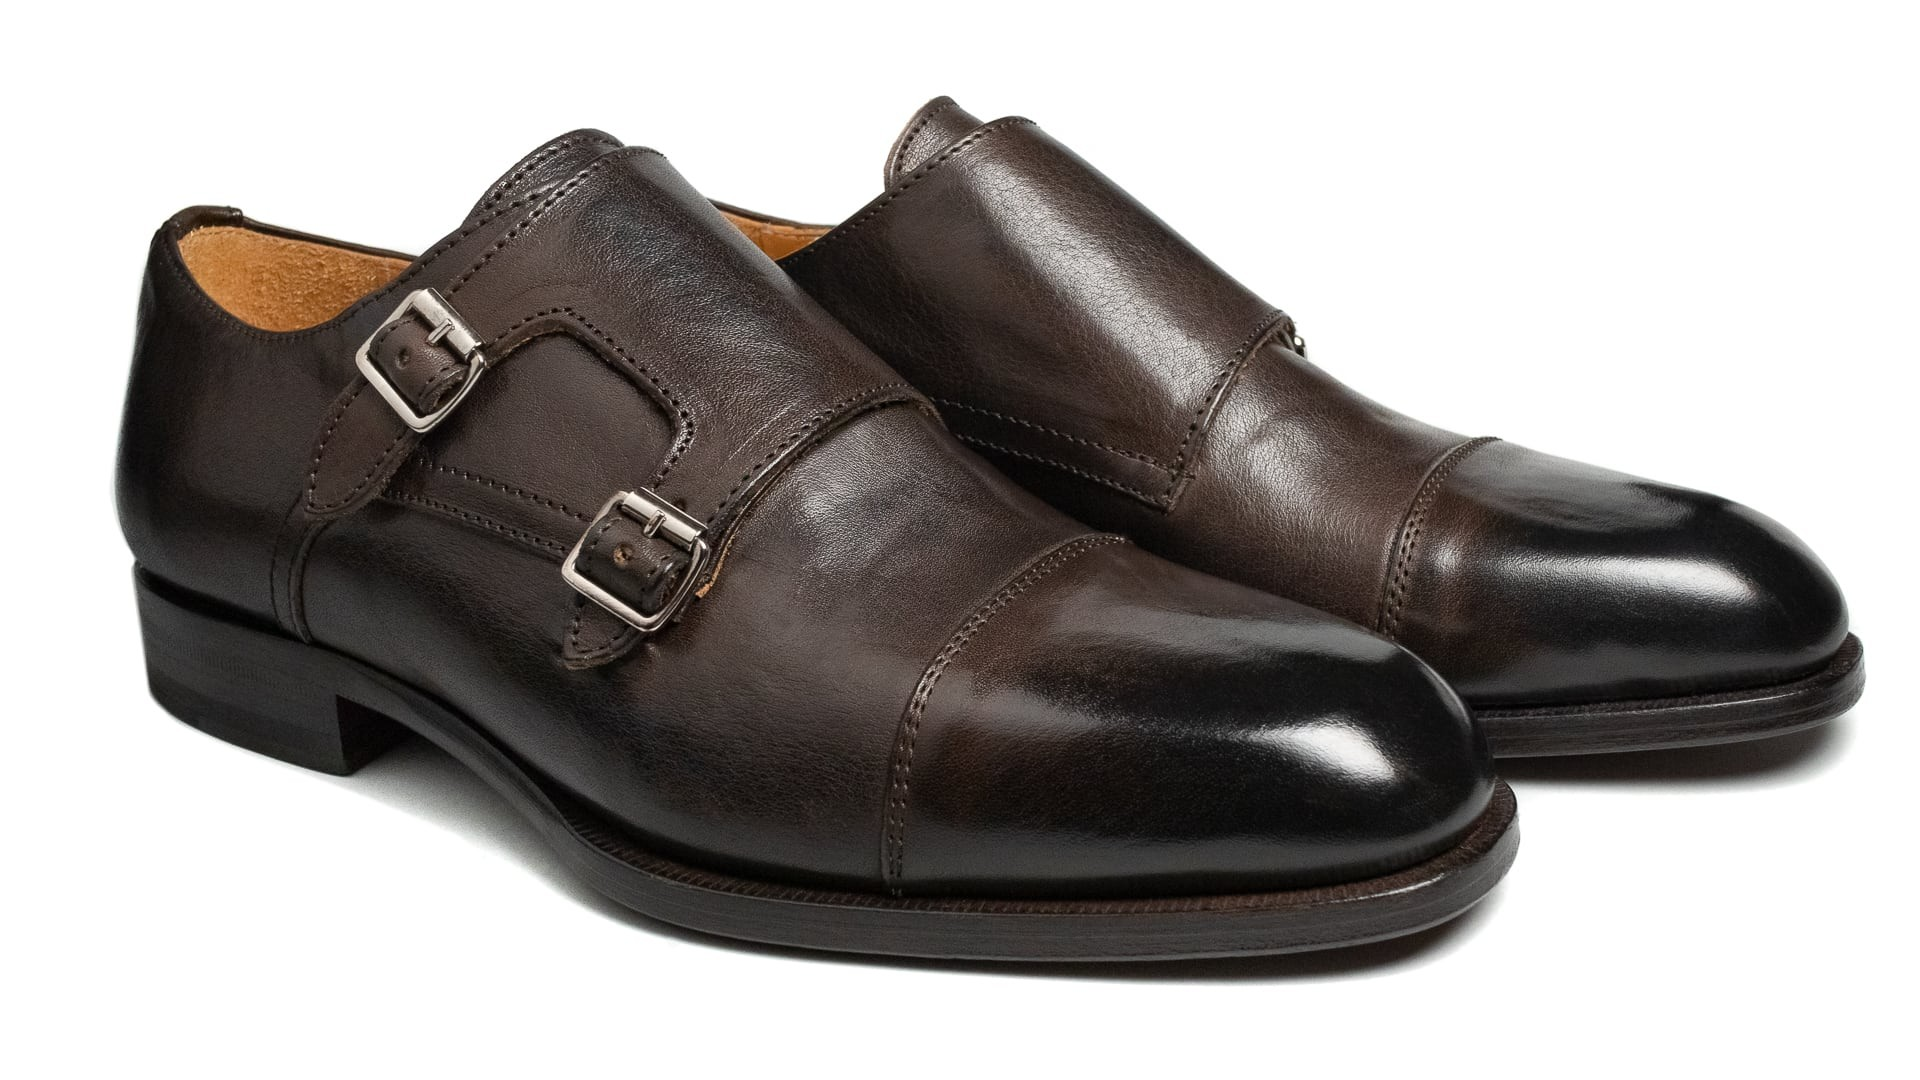 Monk Shoes Vacchetta Testa Di Moro